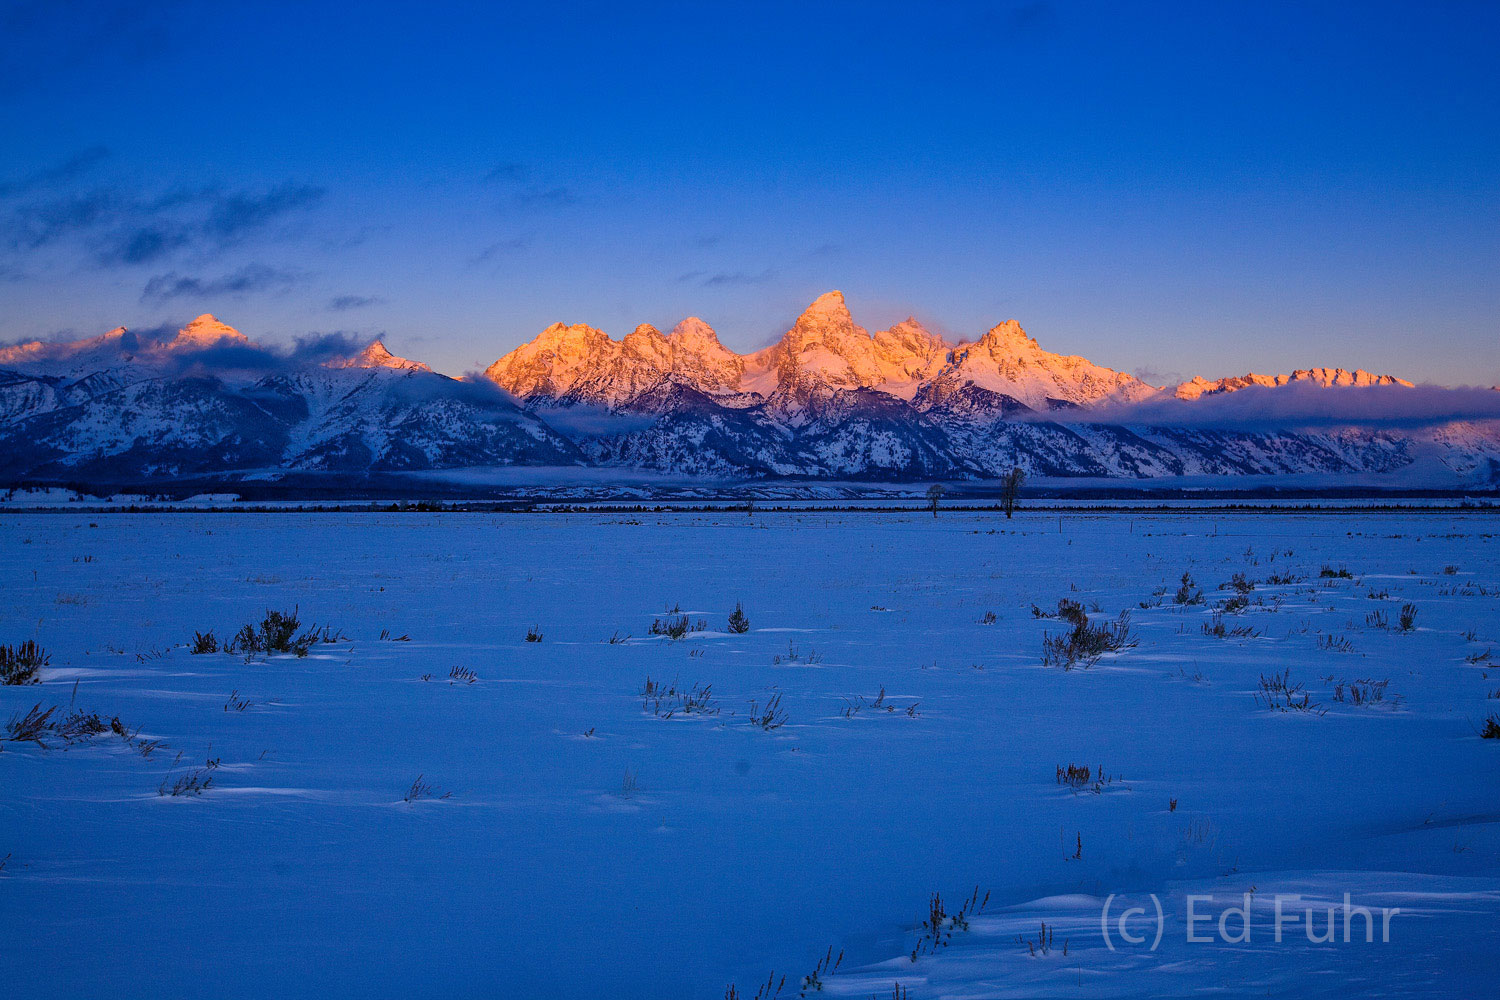 Across the frozen meadows and valley, the Grand Teton mountain range is ignited by the glow of a clear winter's dawn.